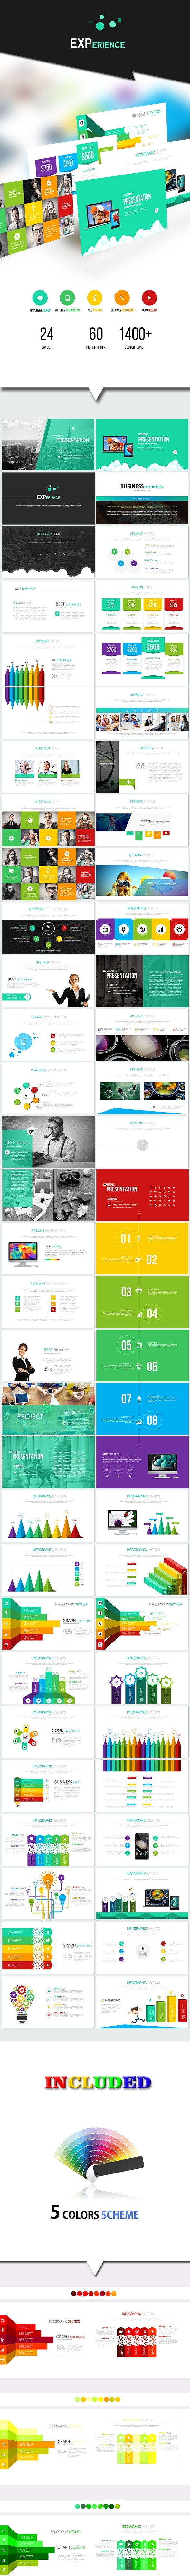 EXPERIENCE - Google Slides Template - Google Slides Presentation Templates